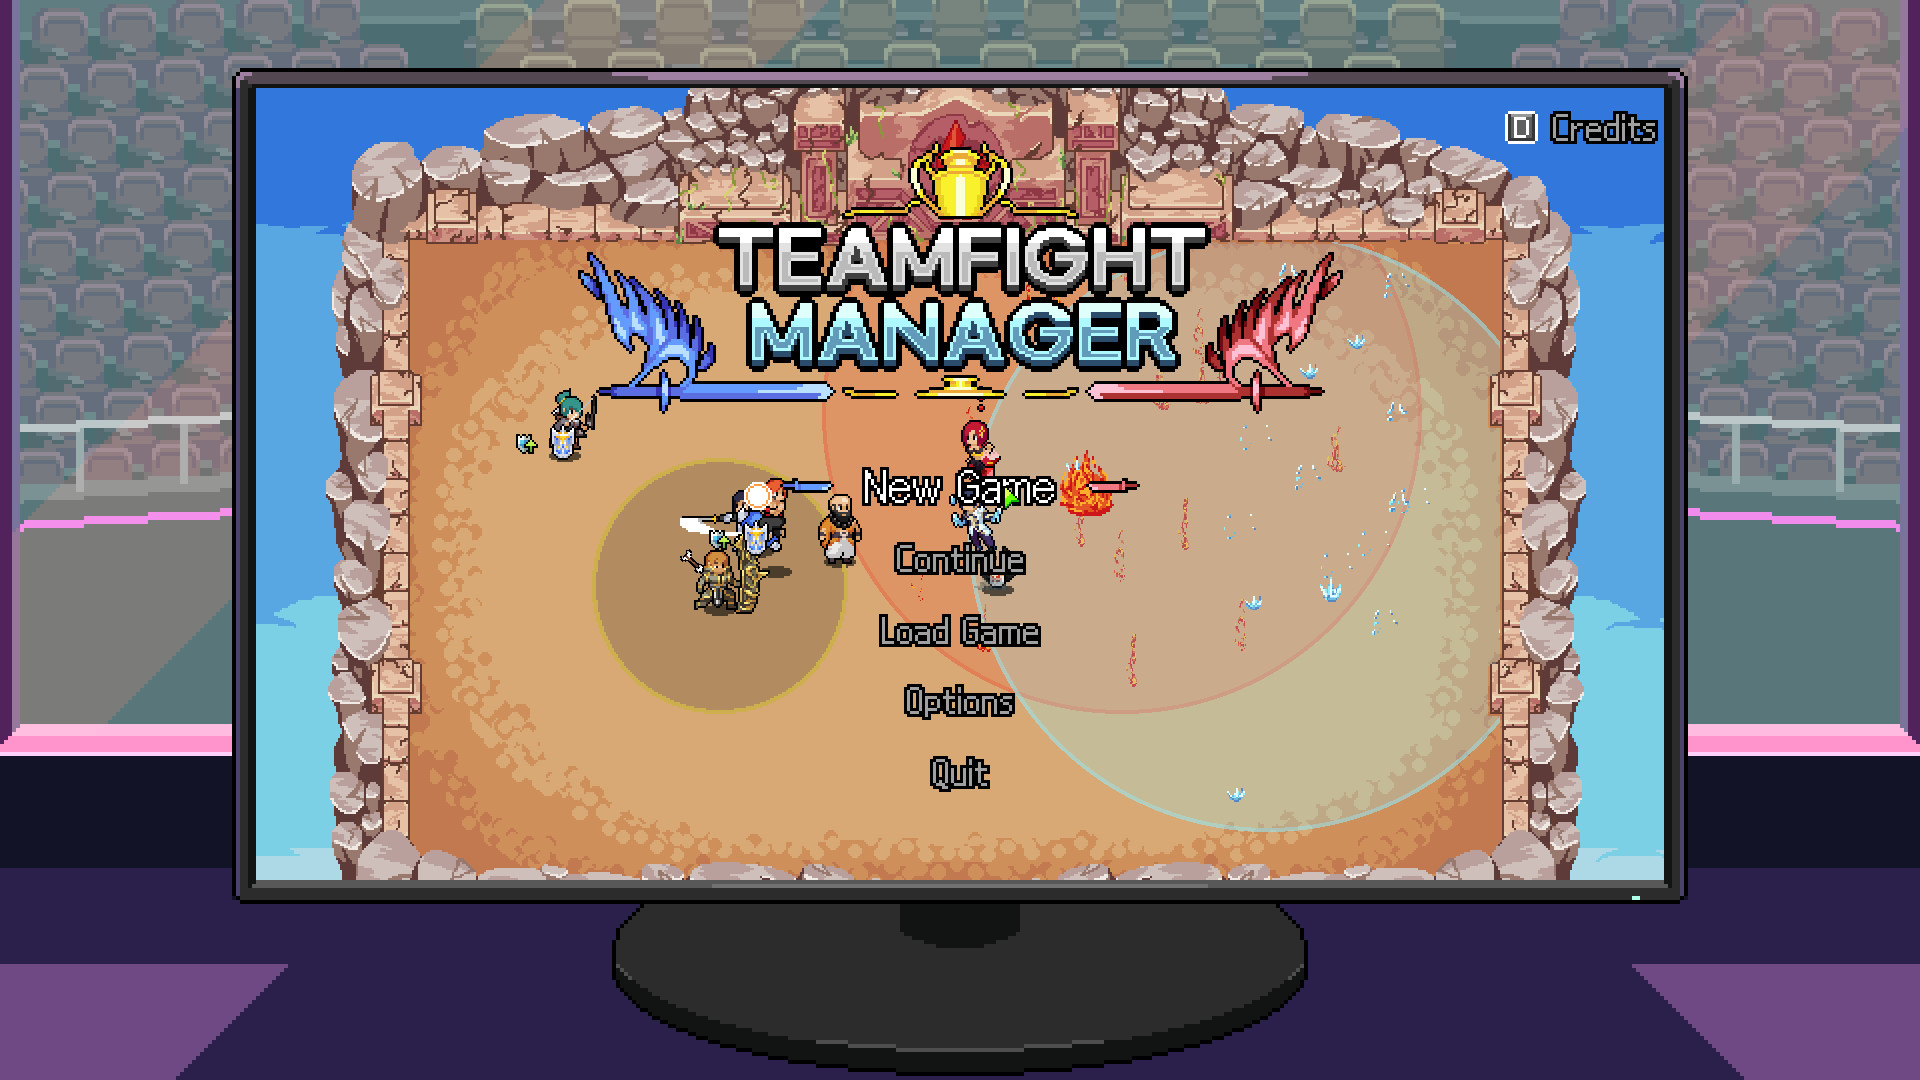 Find the best gaming PC for Teamfight Manager